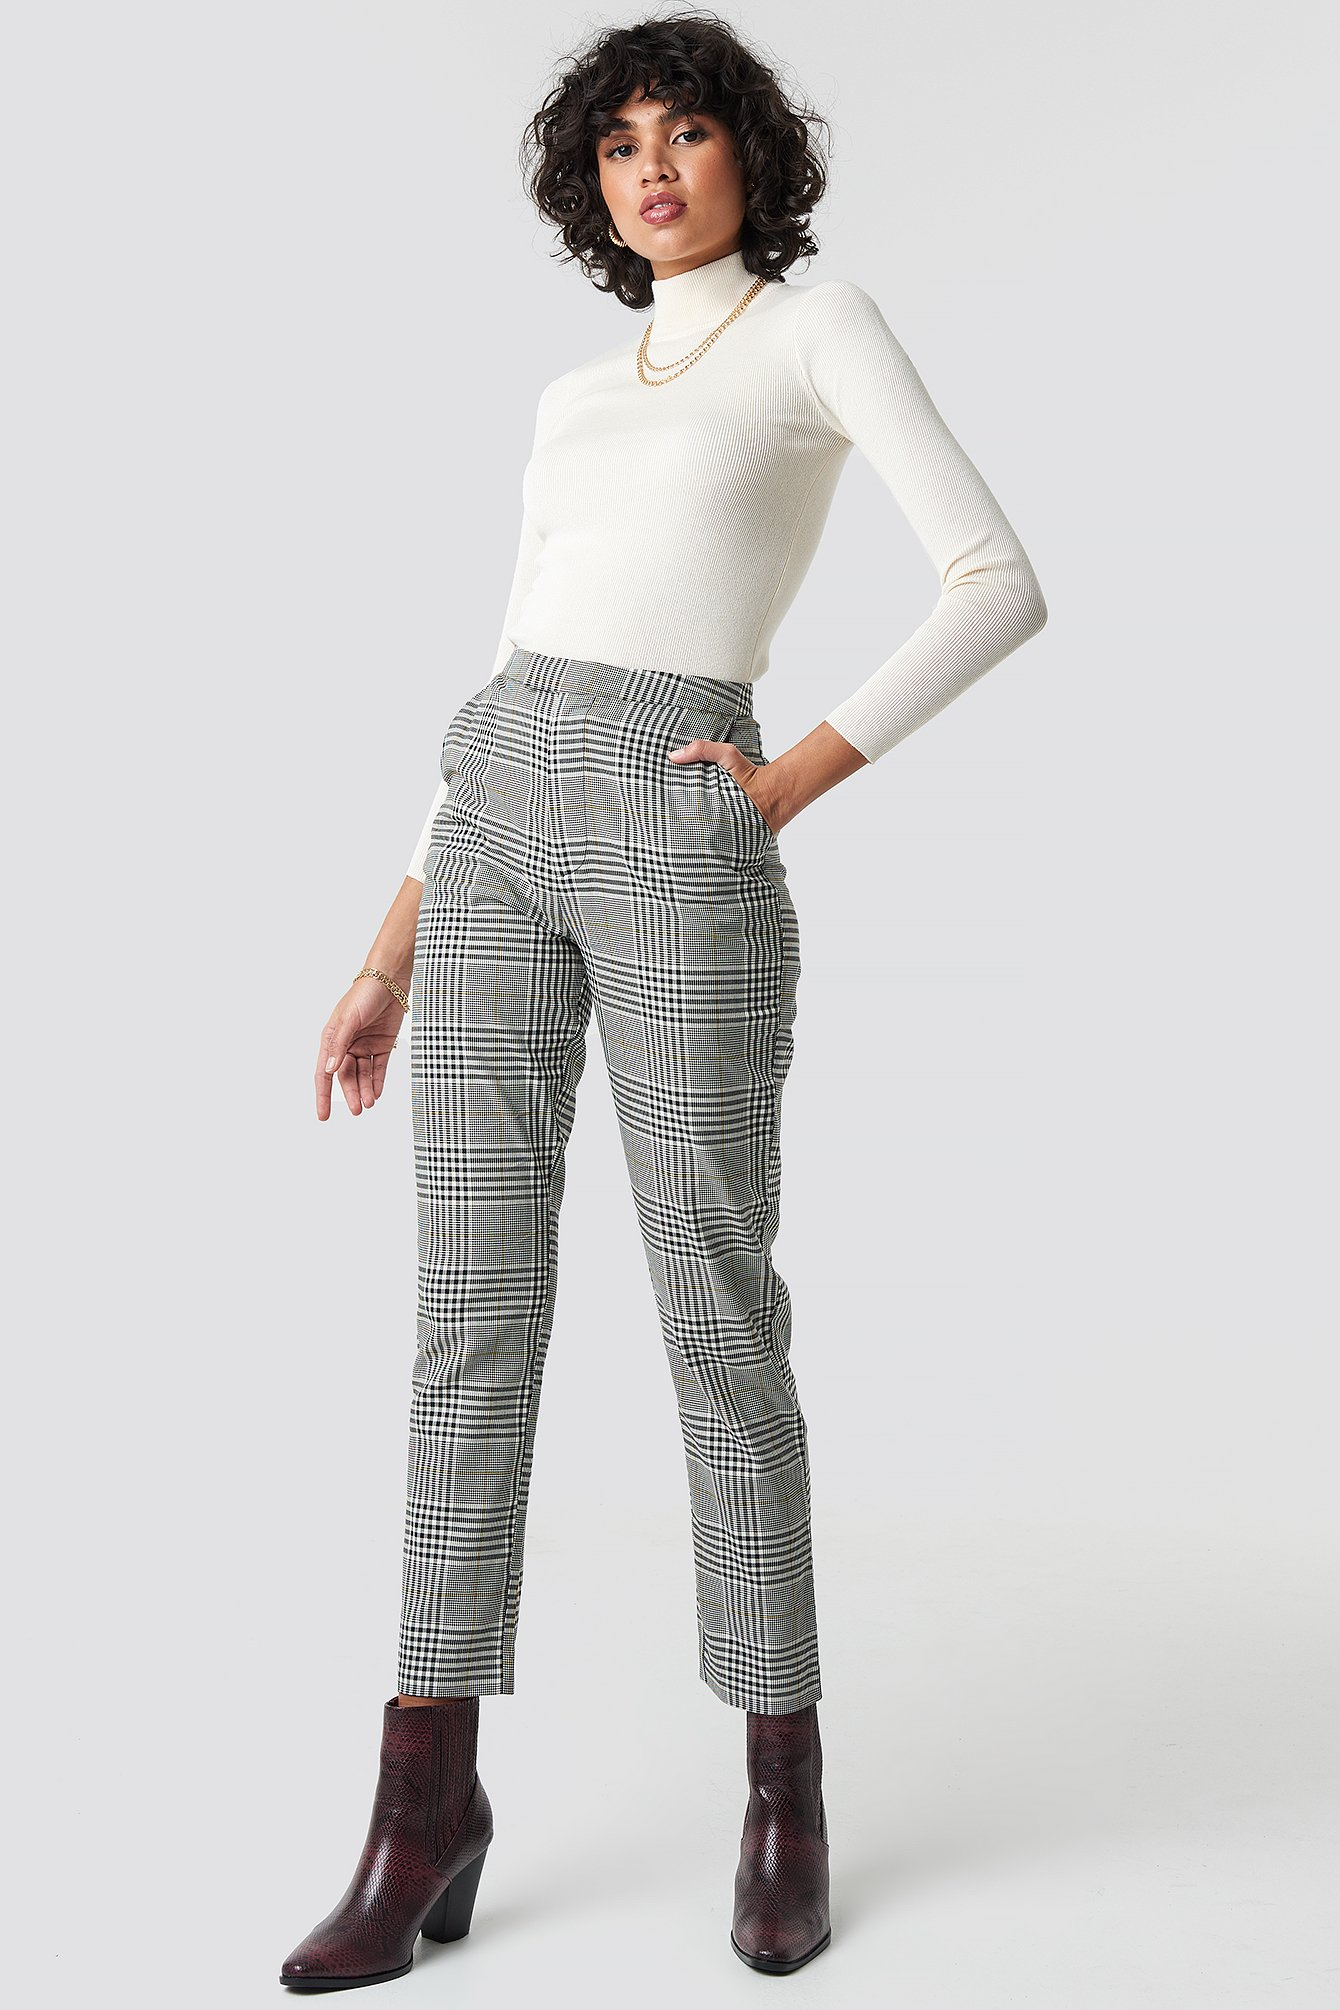 Checkered High Waist Checkered Suit Pant